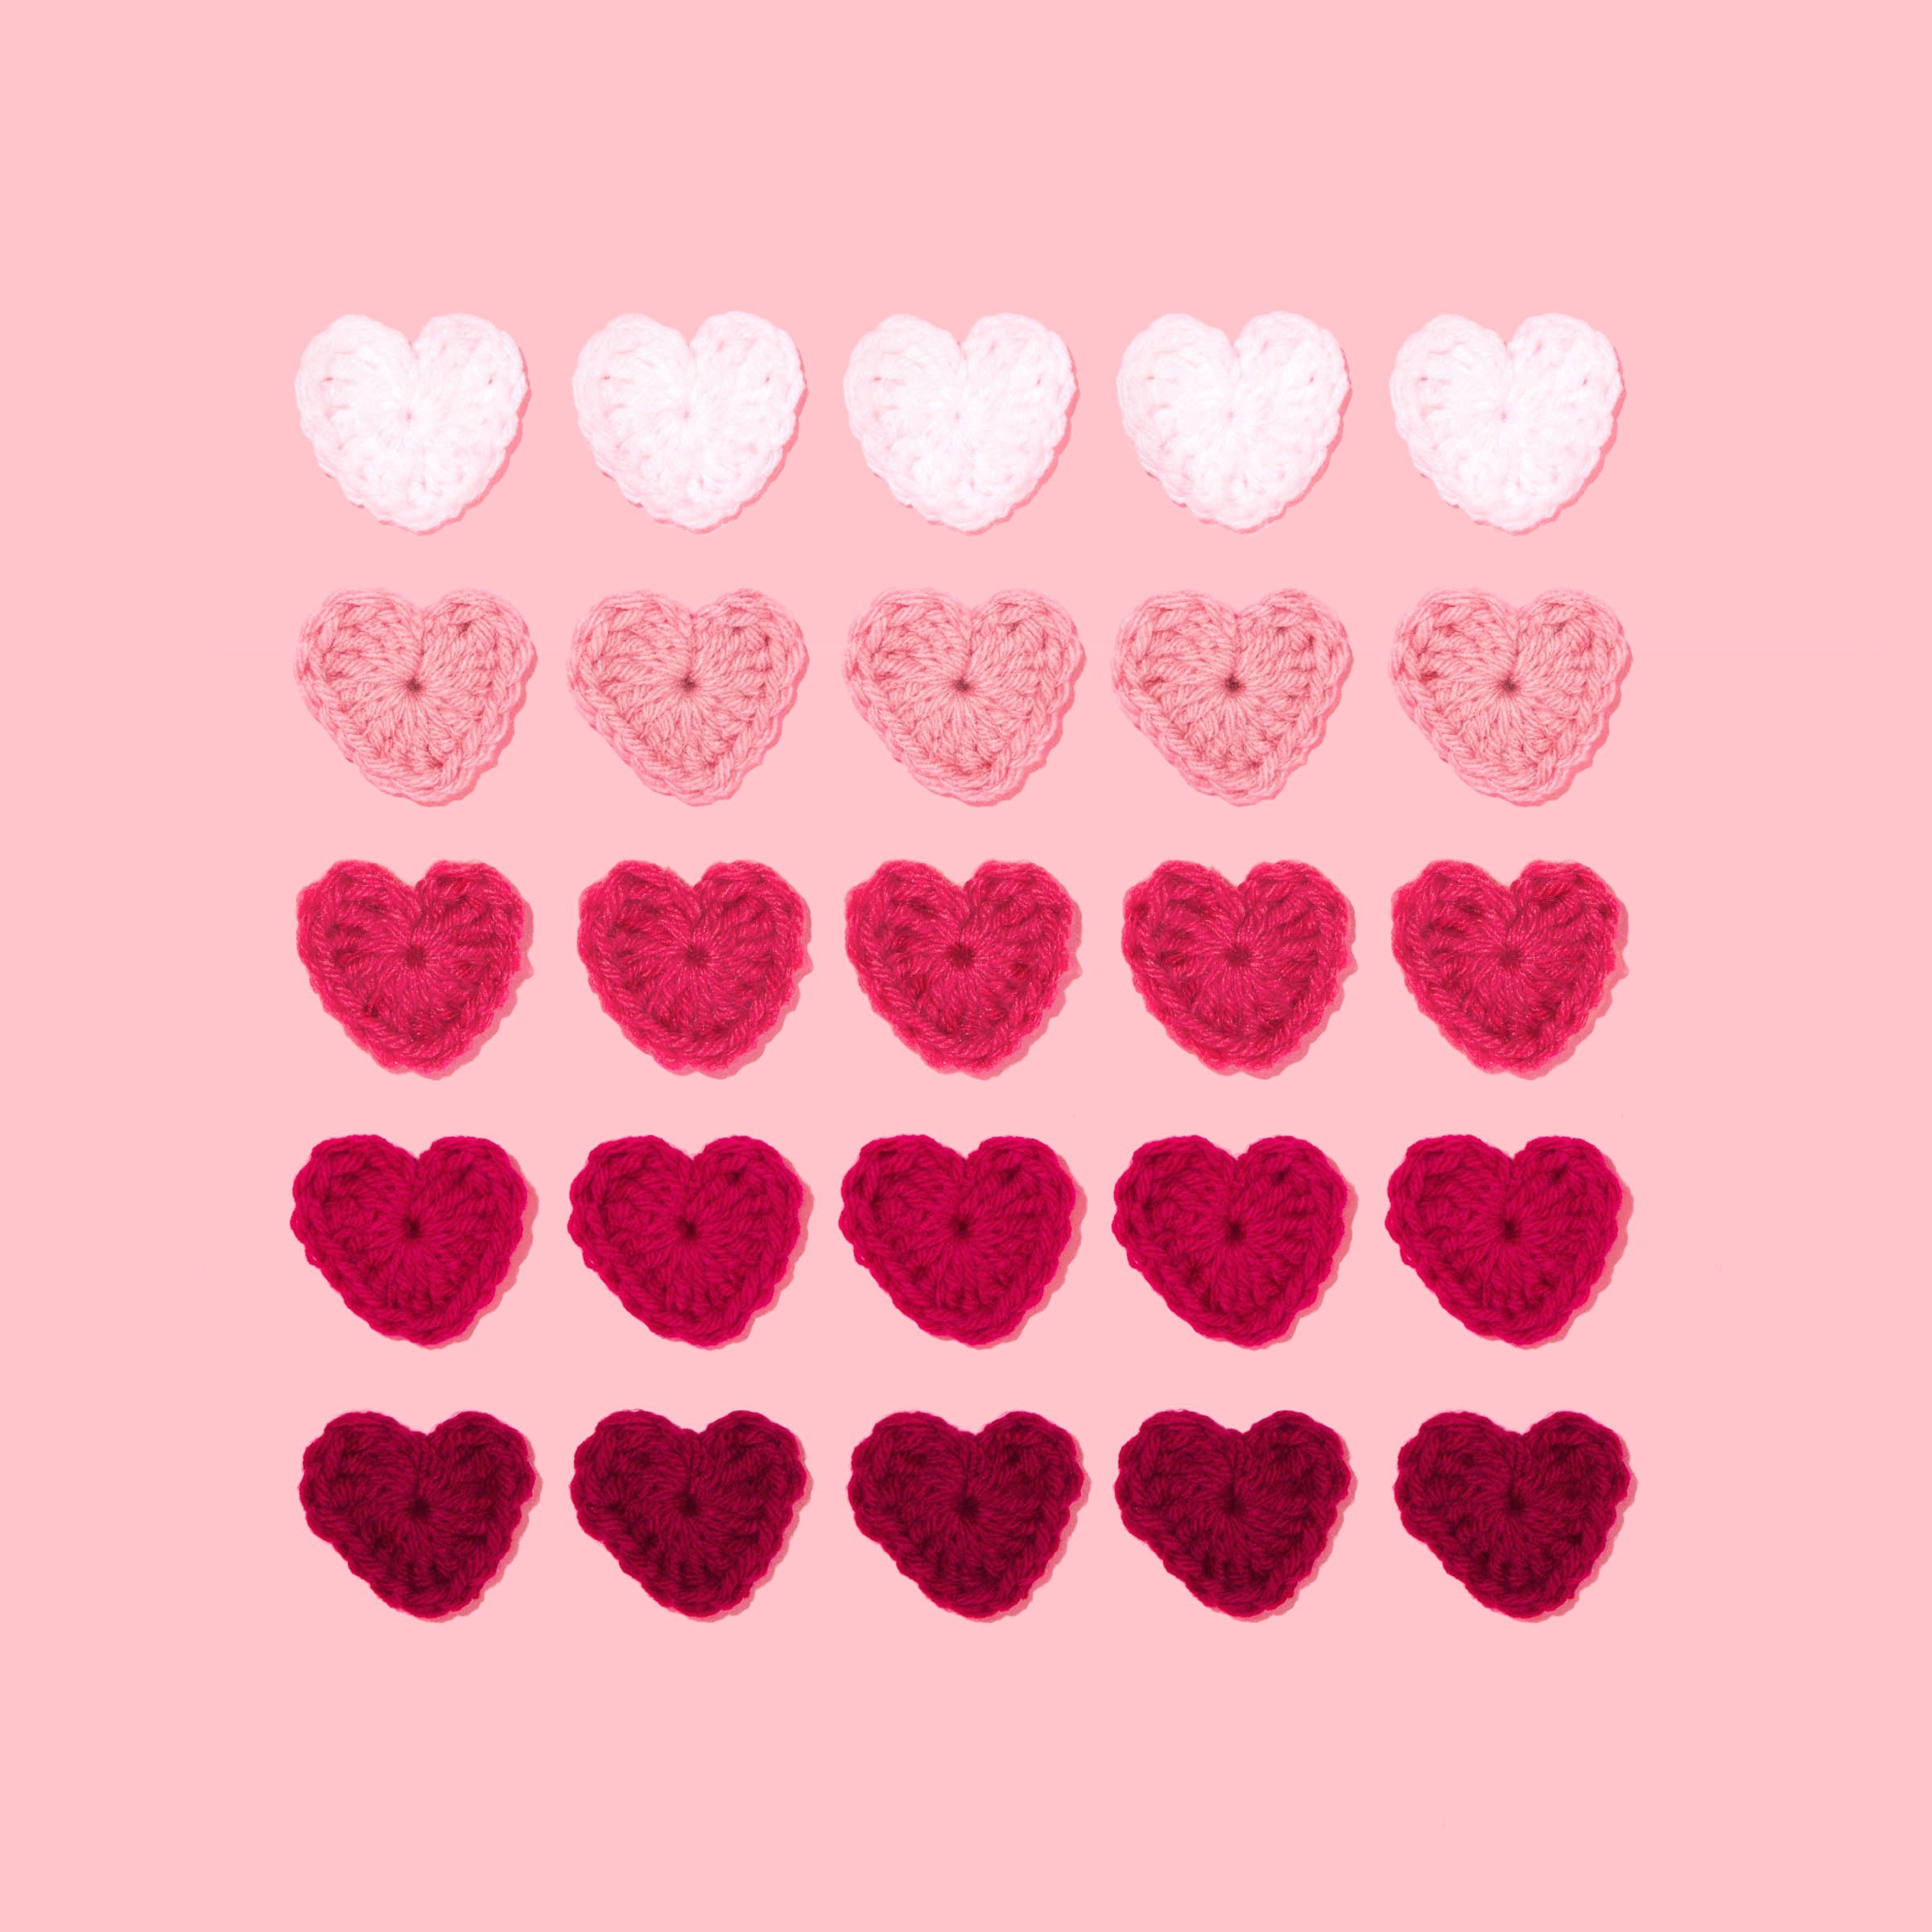 A selection of different kinds of pink hearts